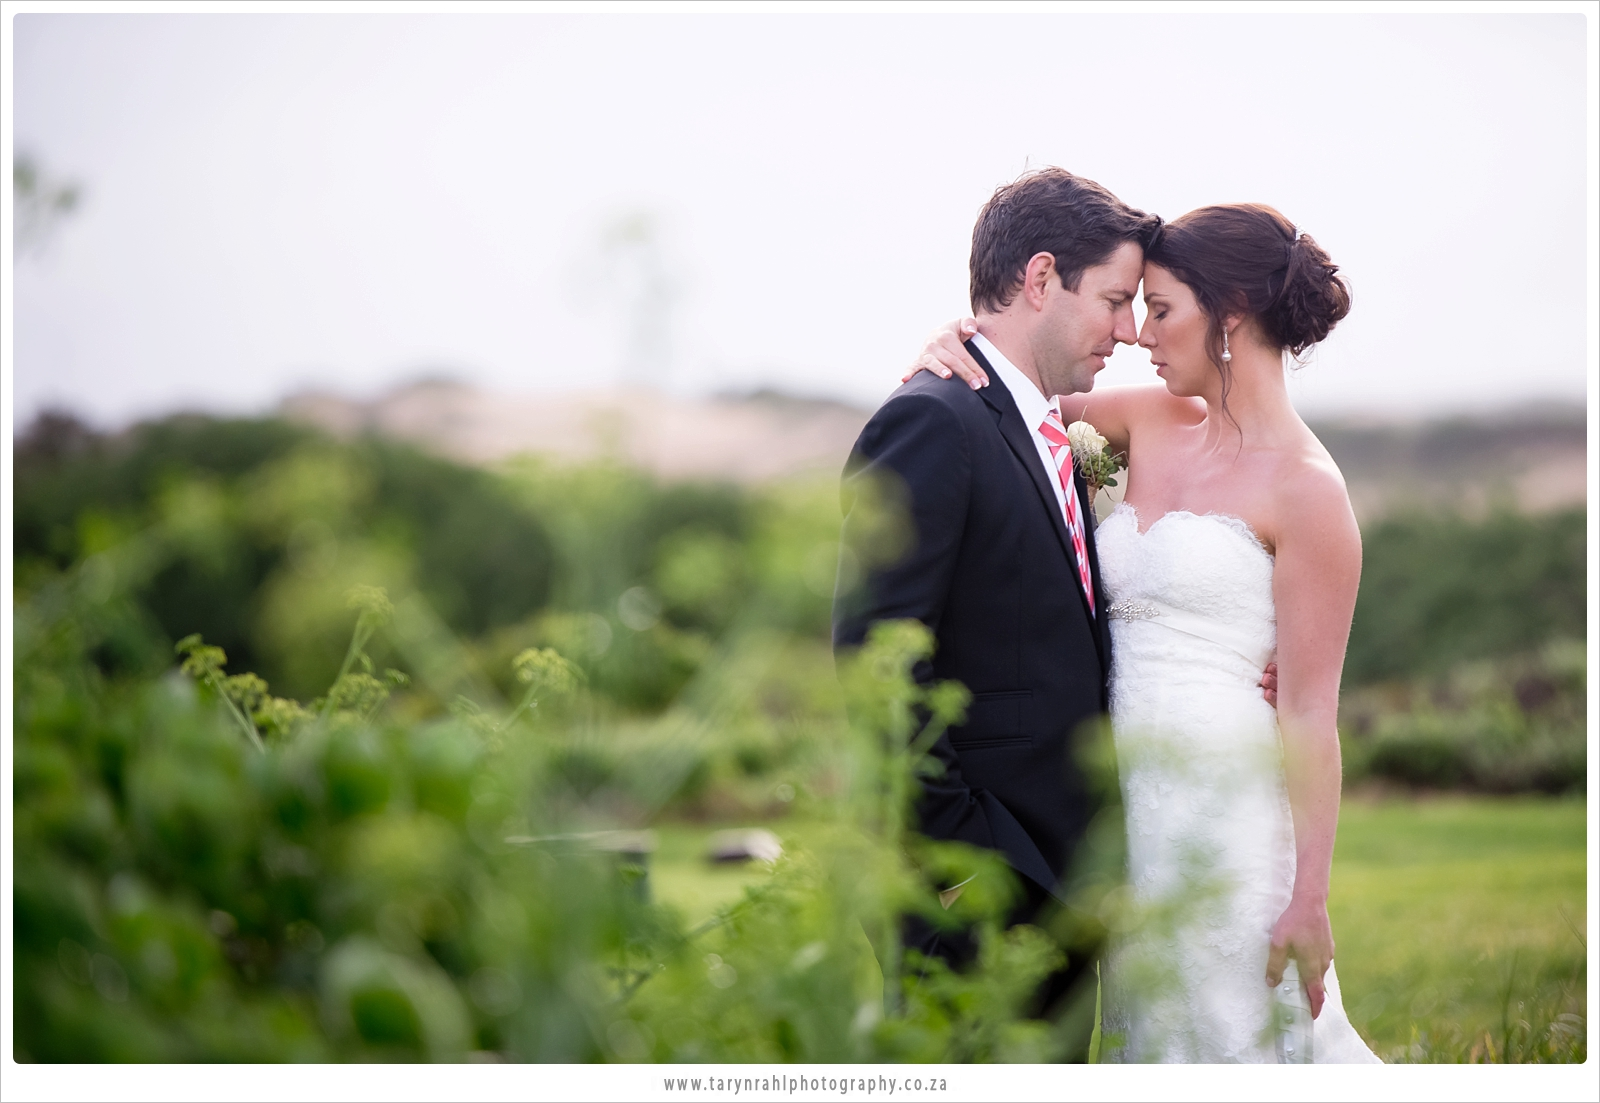 Sarah and Adrian | wedding at St Francis Links